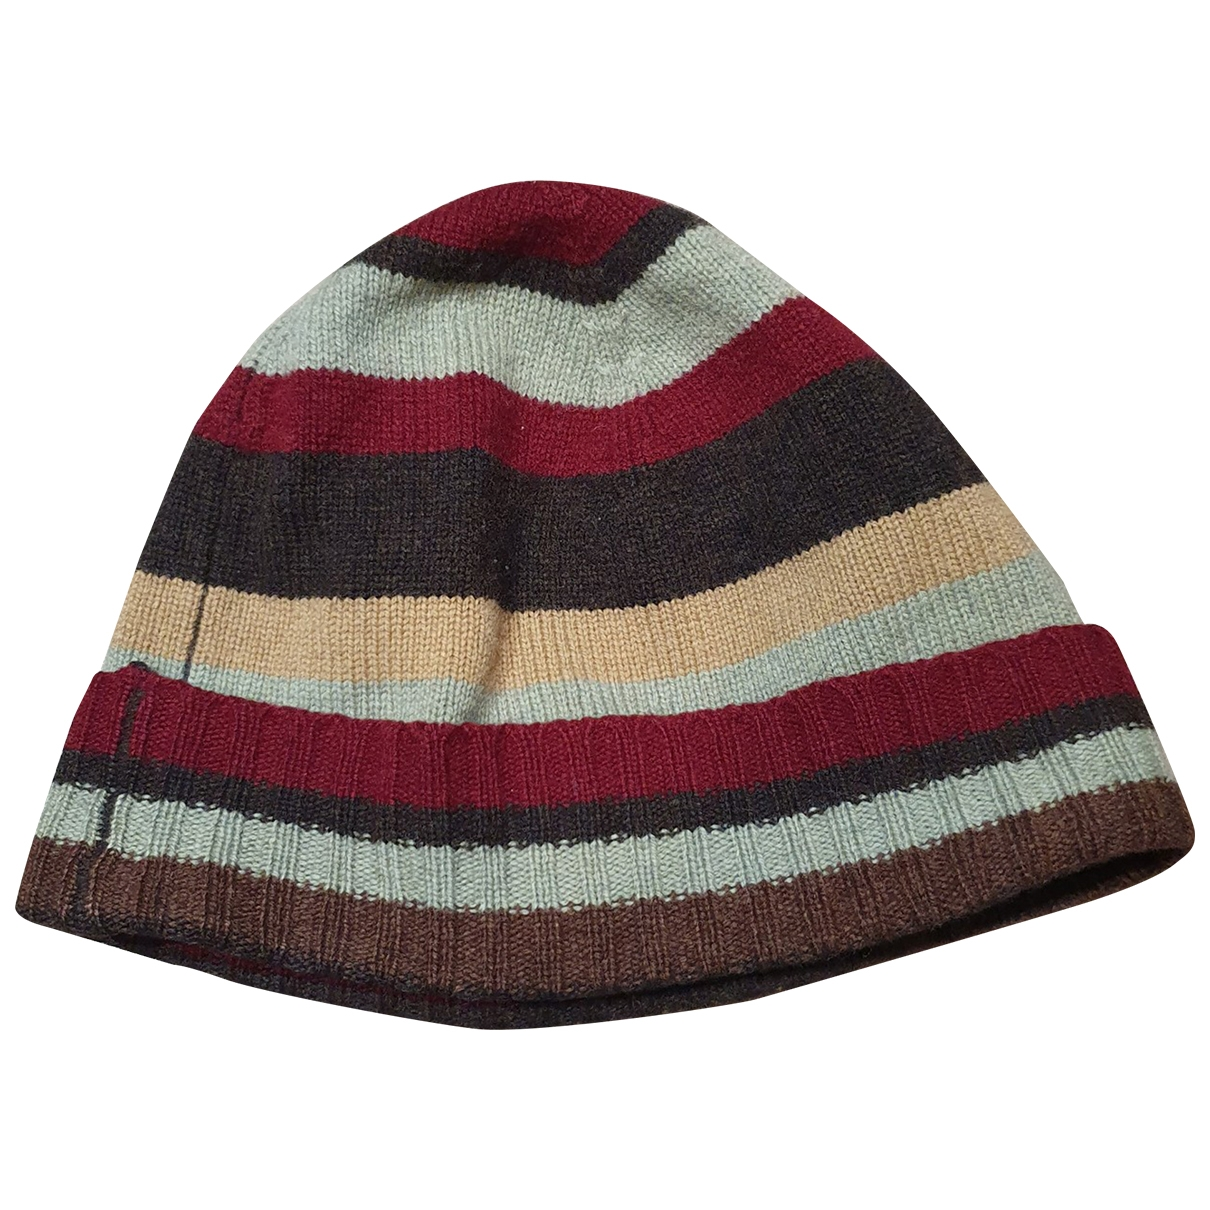 Paul Smith \N Multicolour Wool hat & pull on hat for Men M International